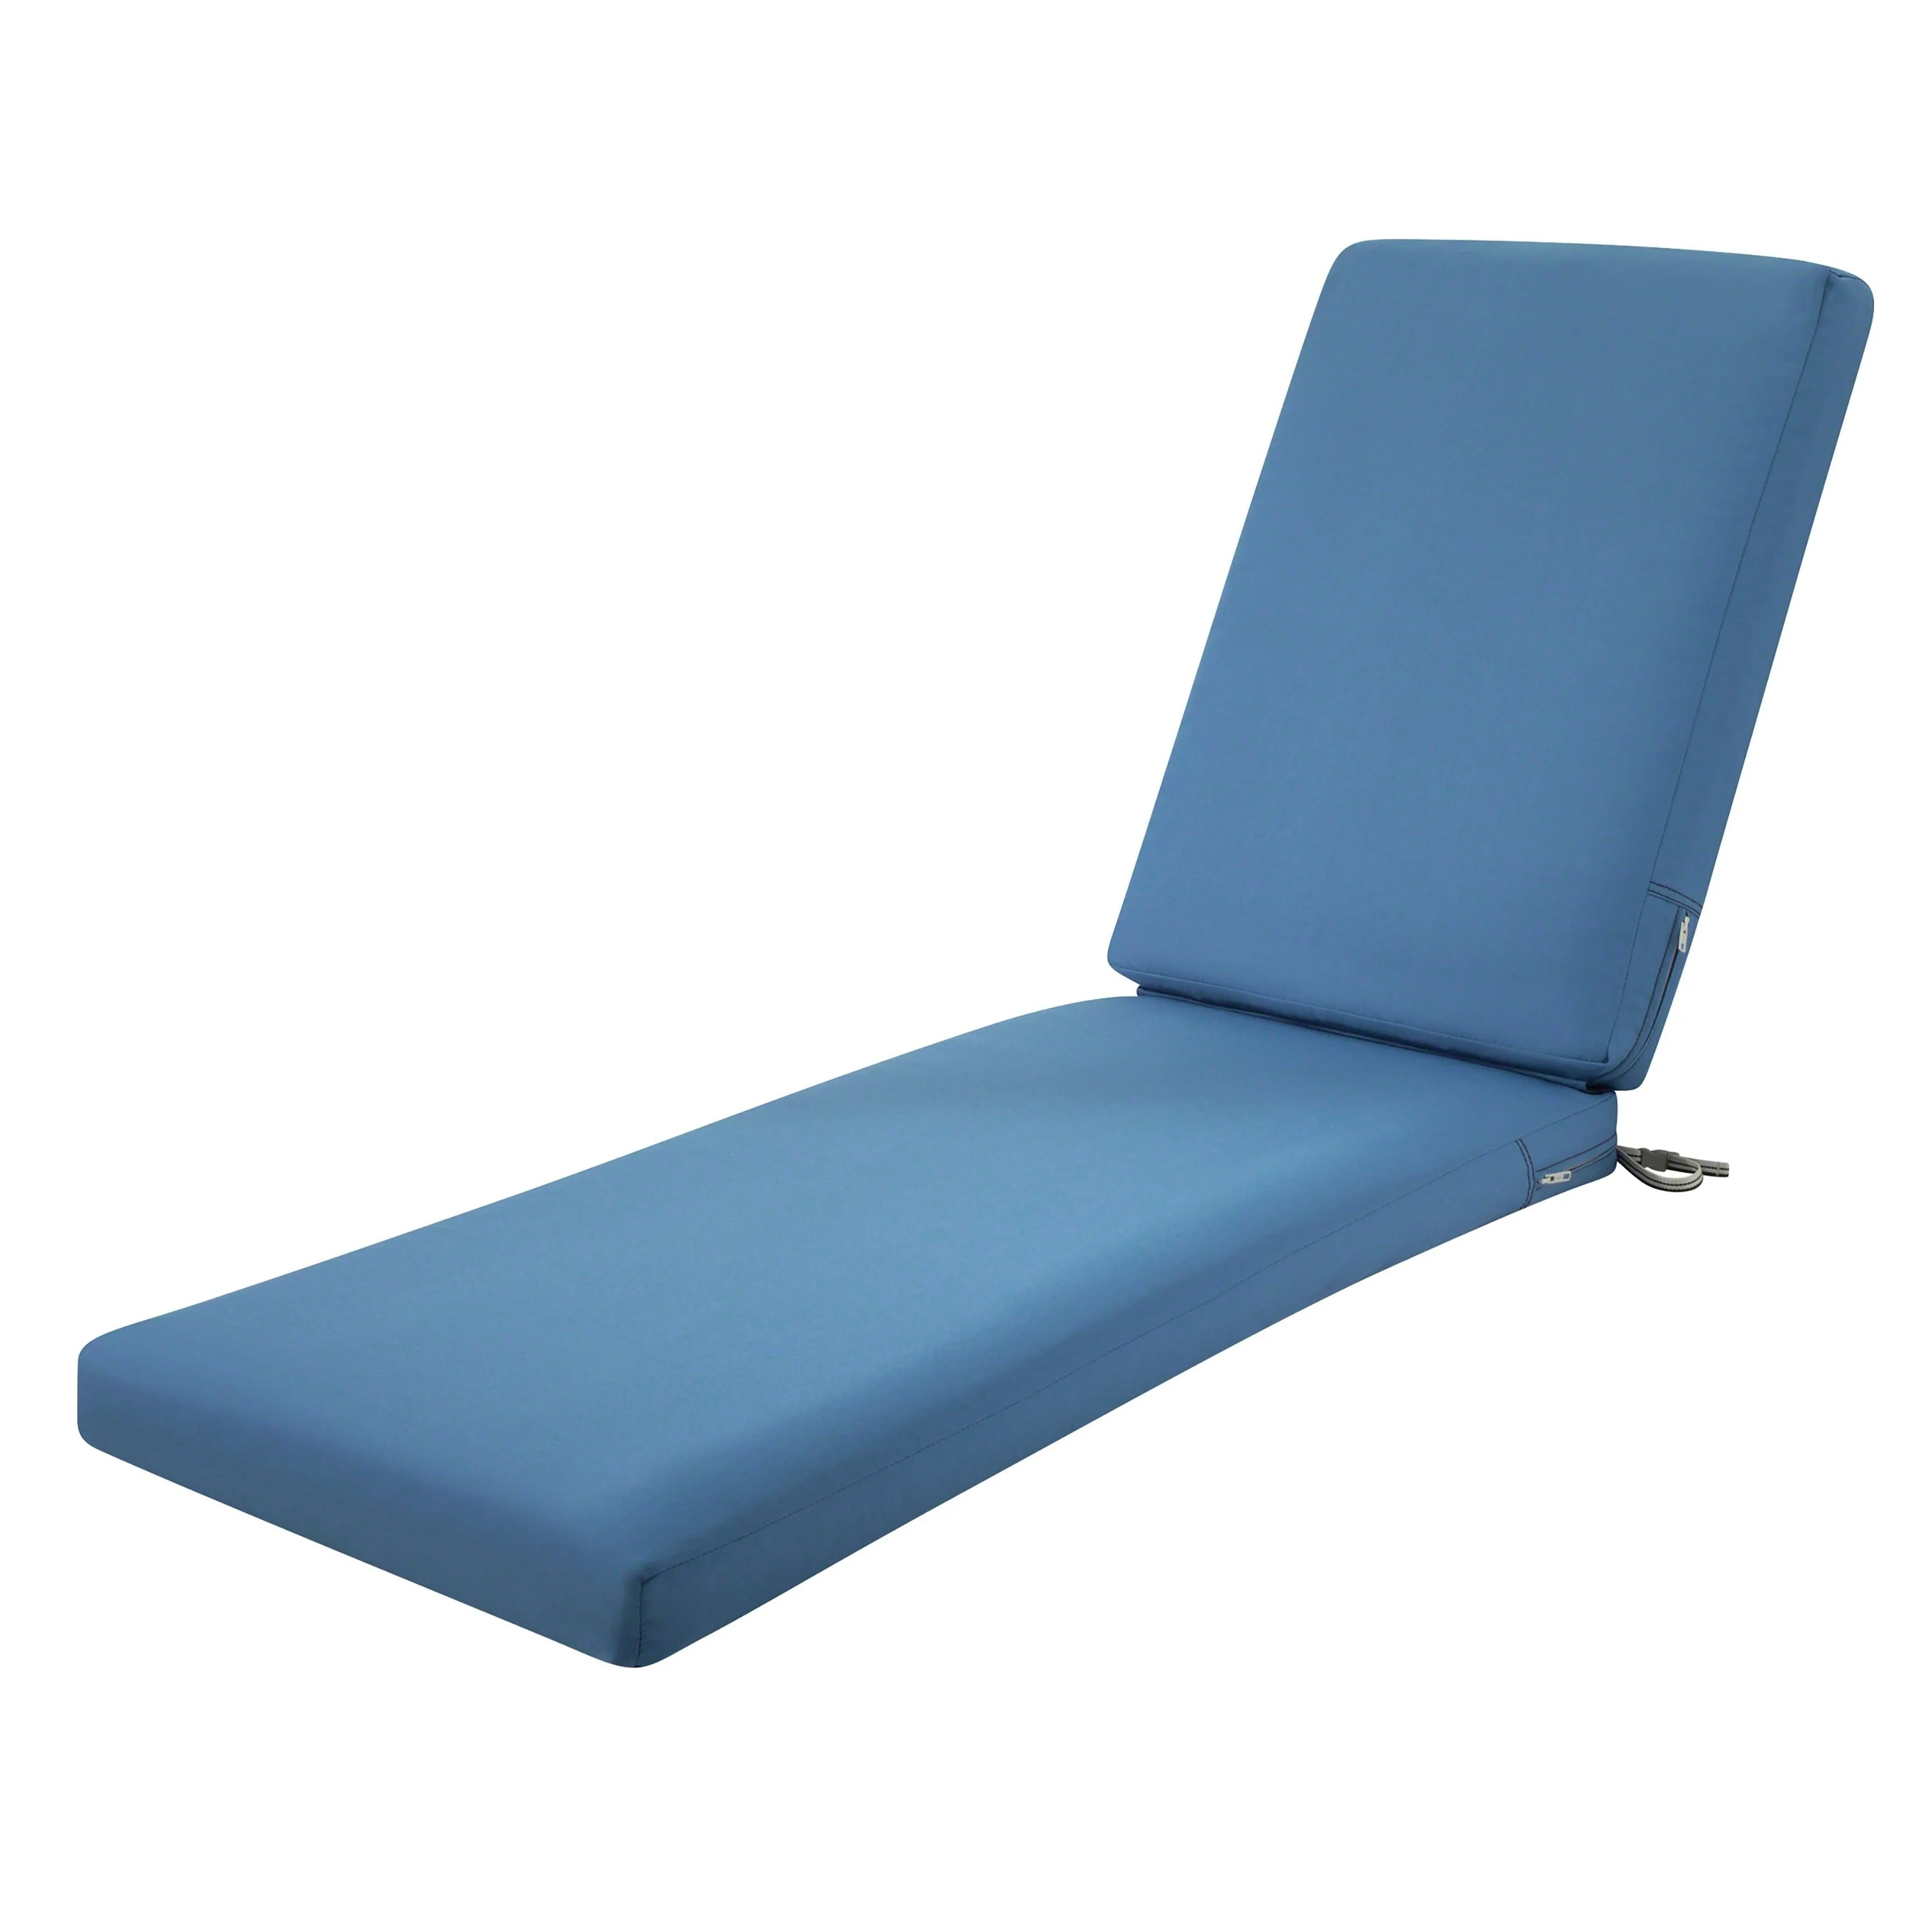 classic accessories ravenna water resistant 72 x 21 x 3 inch patio chaise lounge cushion empire blue